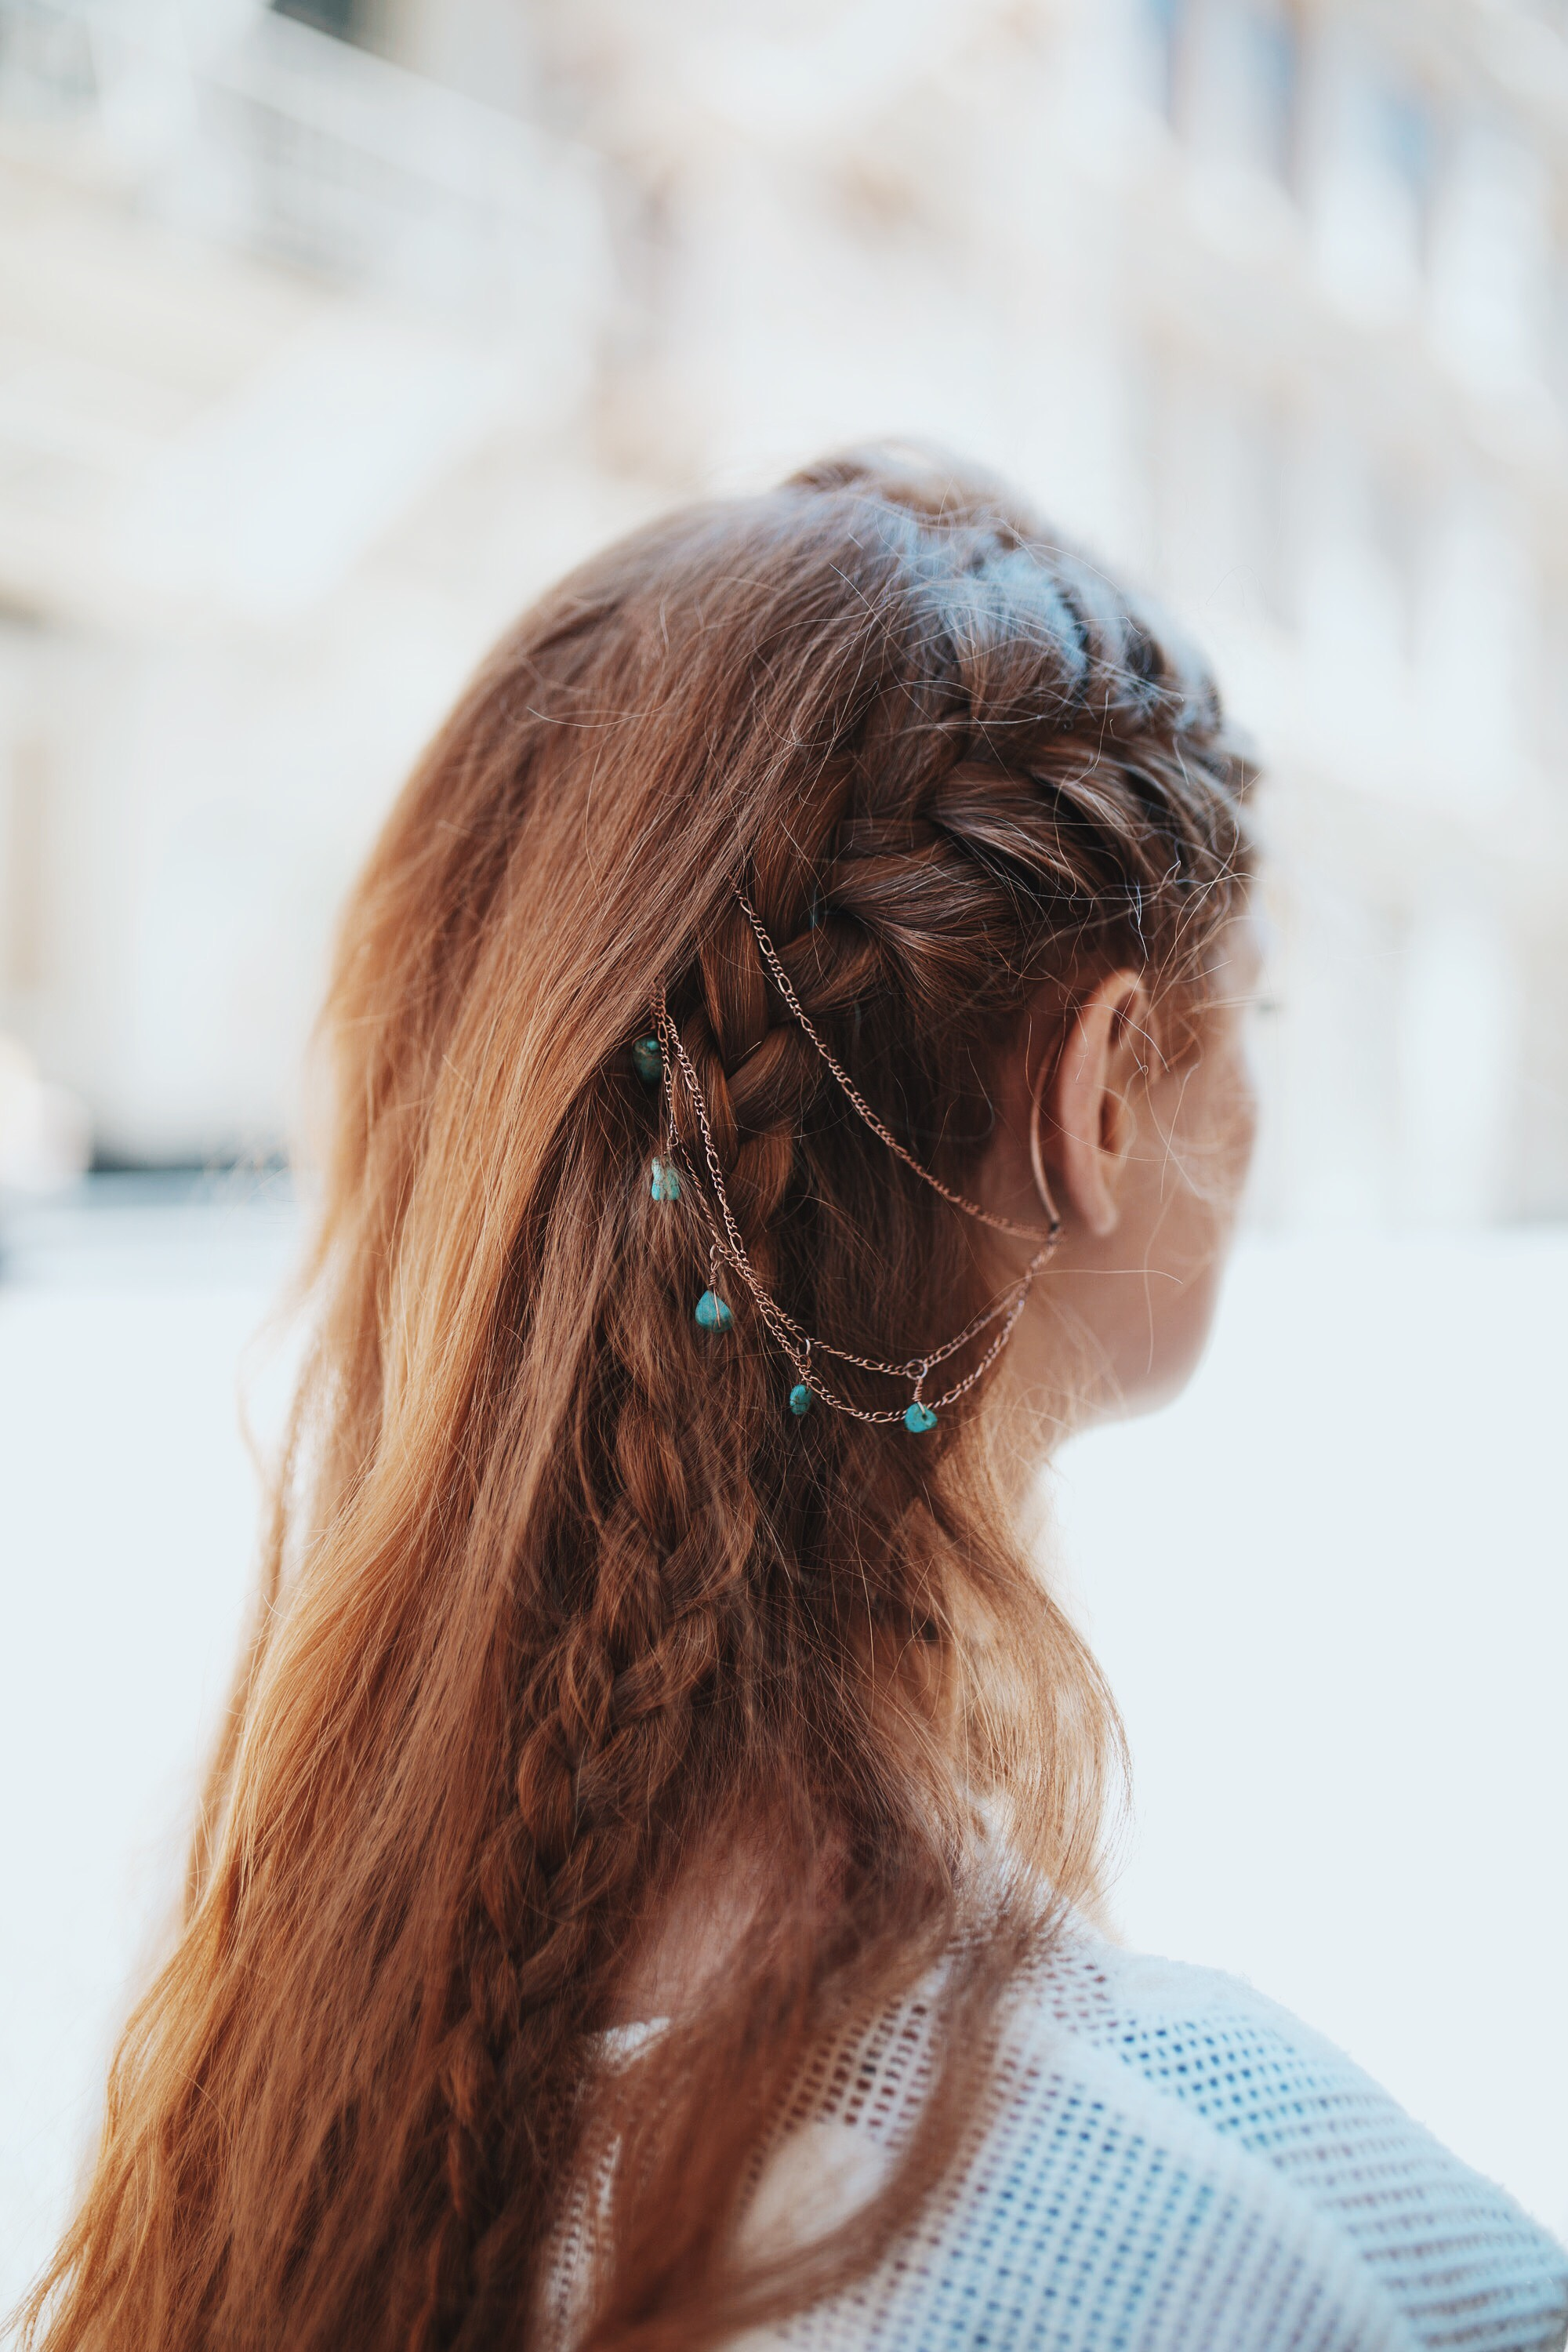 Post image for Suite Caroline Salon X Free People: Learn How To Style The Ear Cuff To Hair Chain